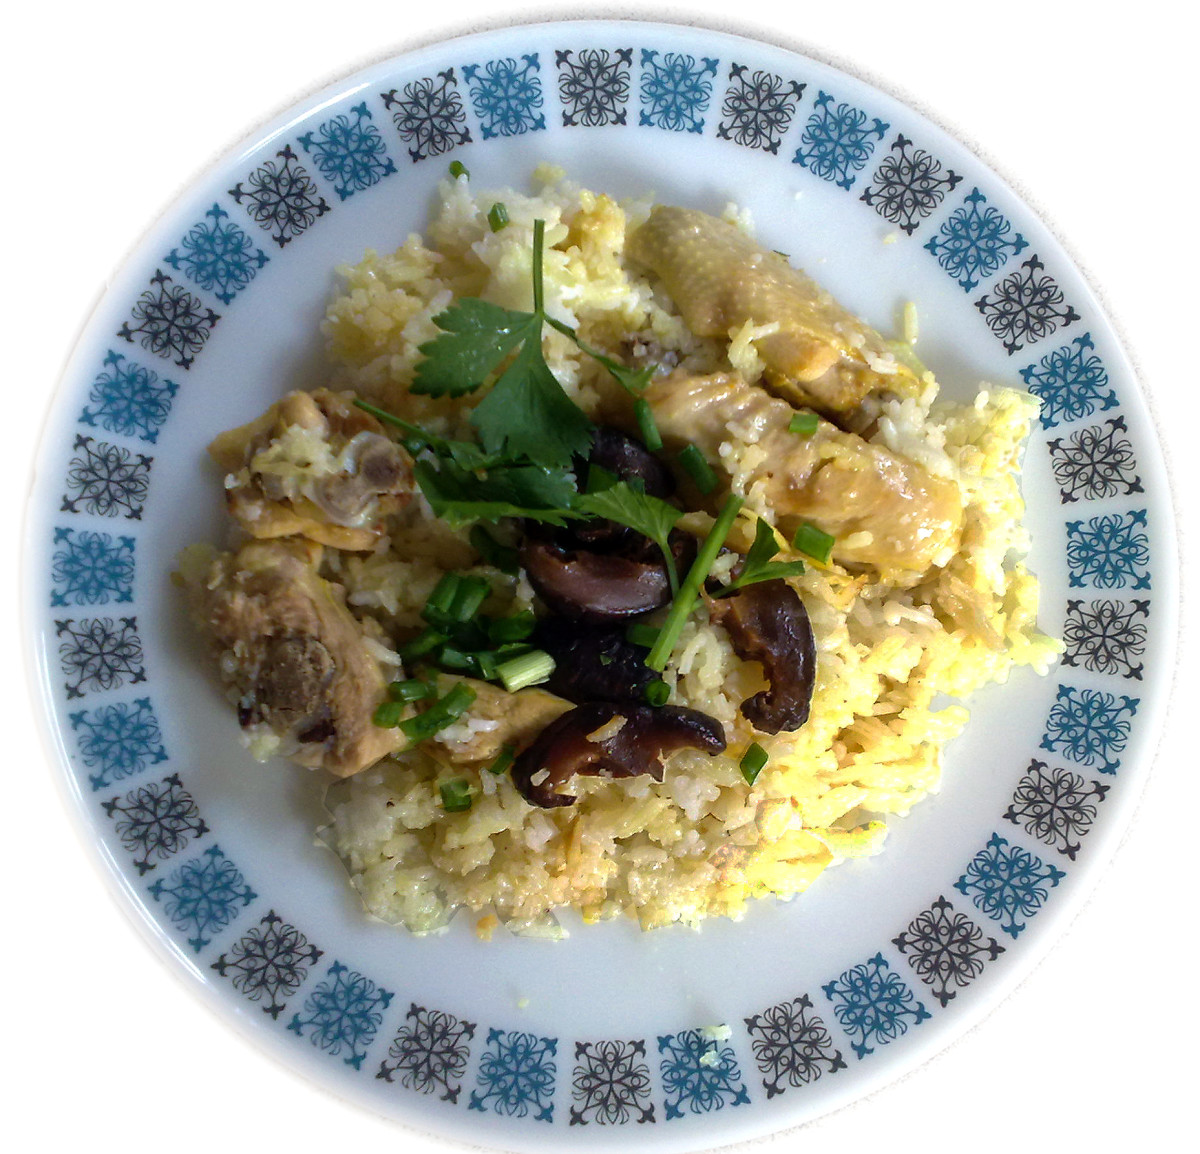 Steamy white rice topped with marinated chicken and Shiitake mushrooms - yummy and wholesome